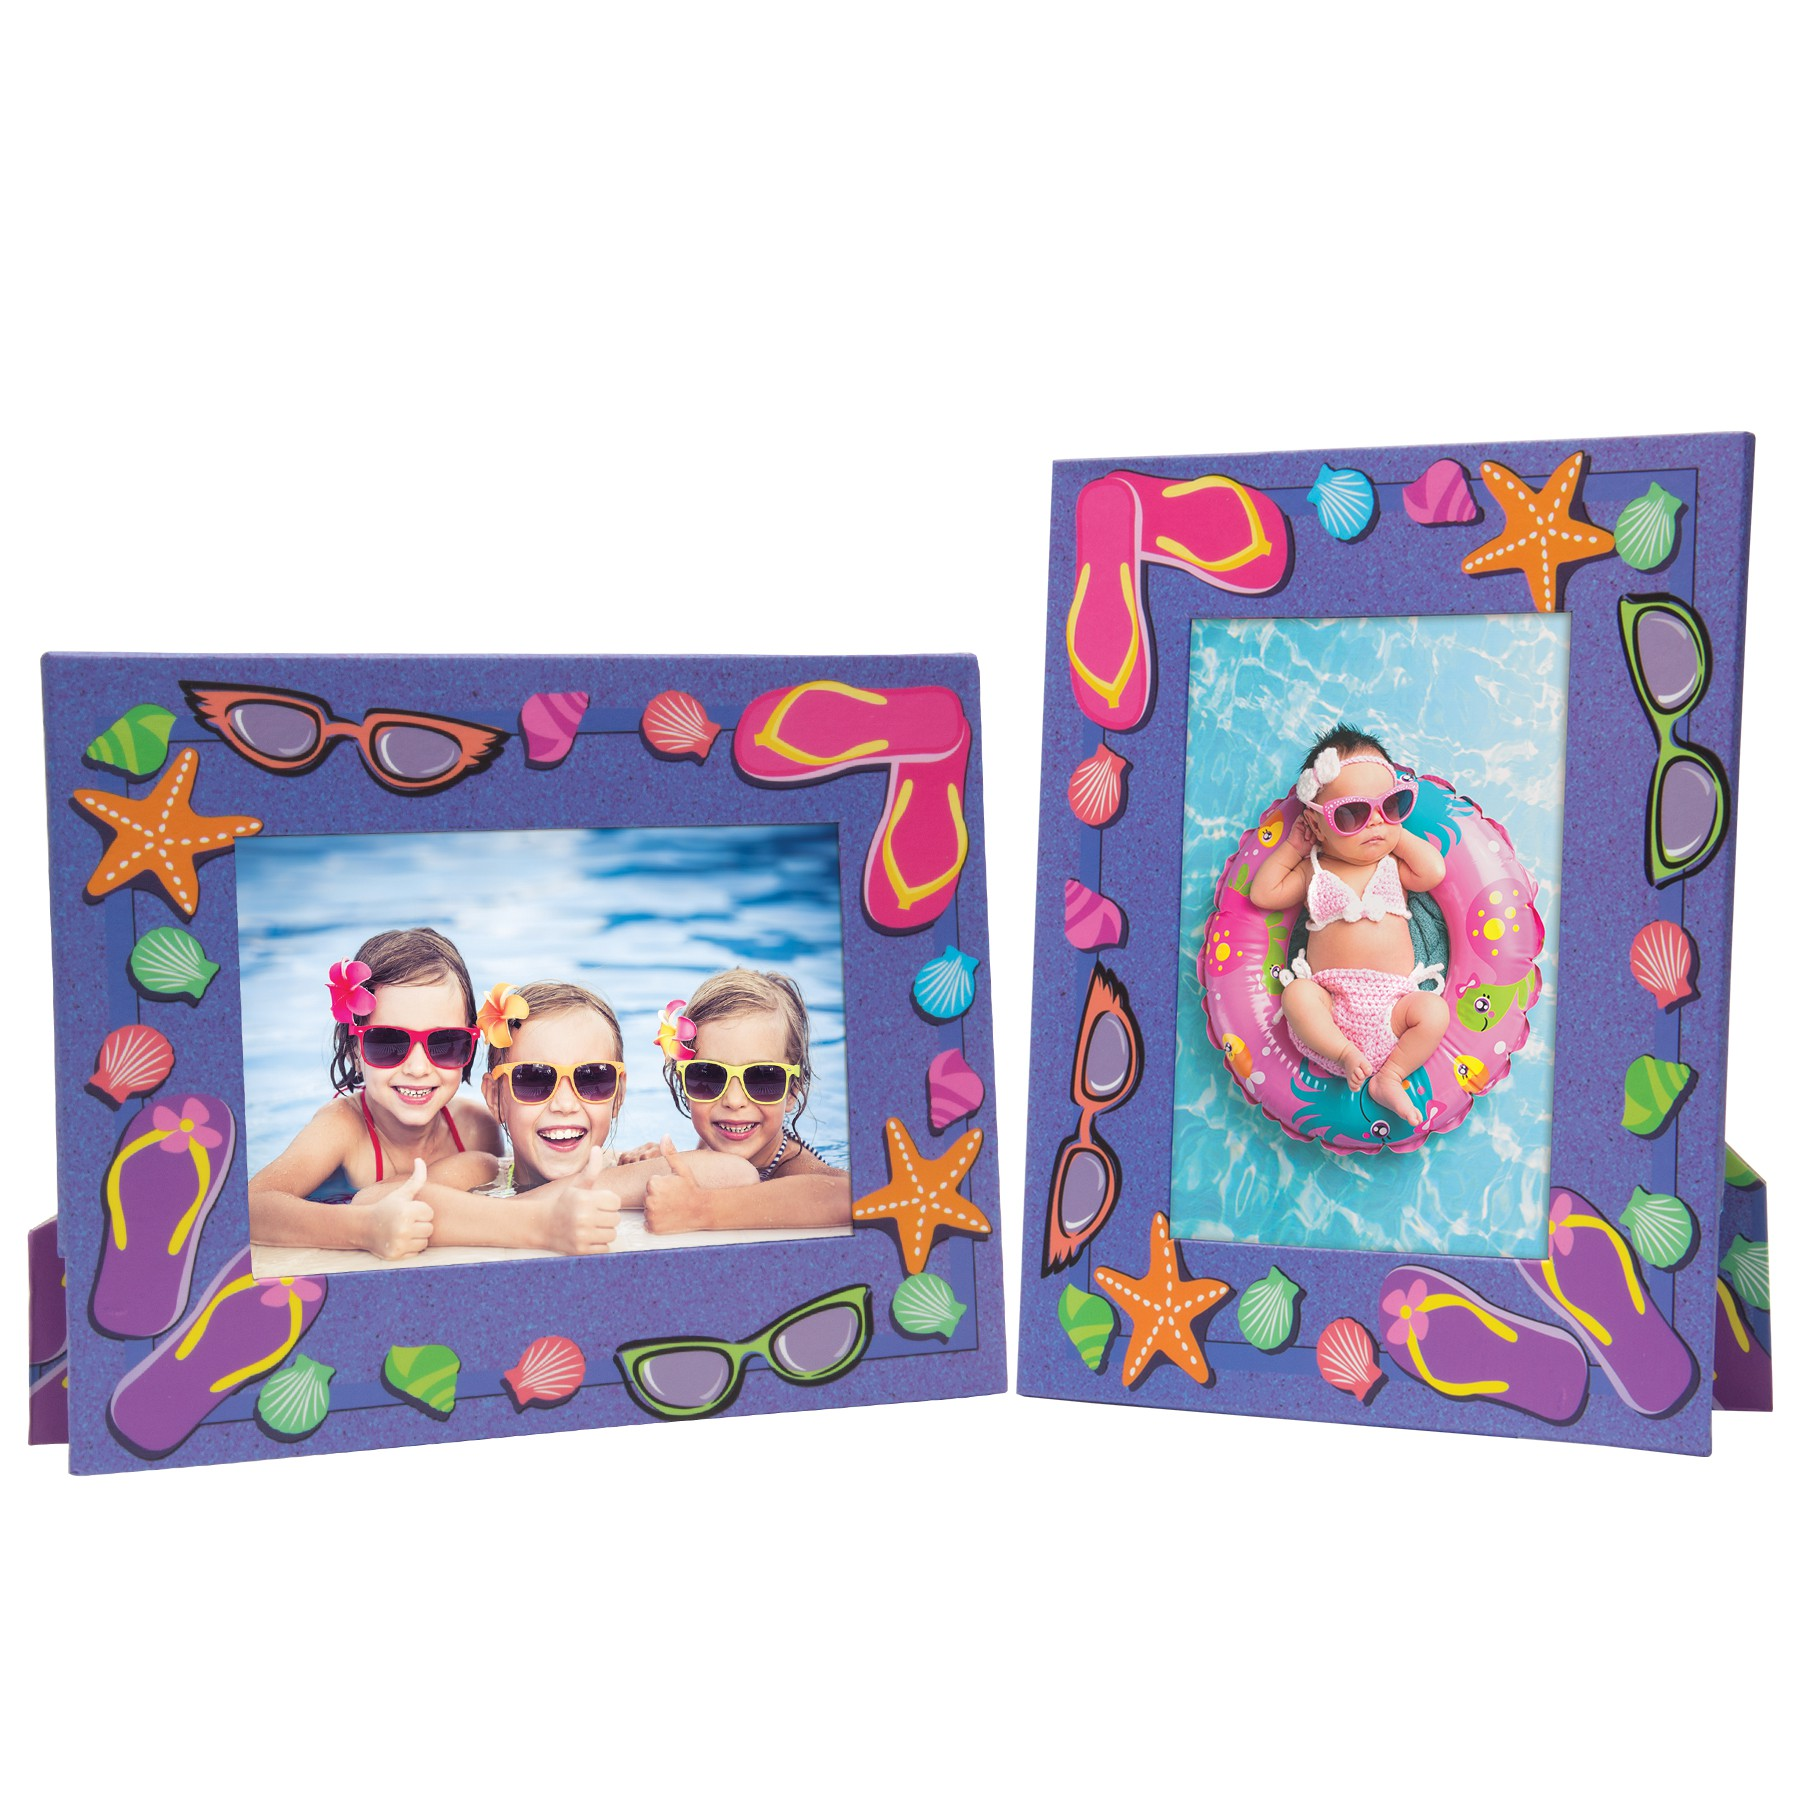 Summer Sunglasses Flip Flops Picture Frames